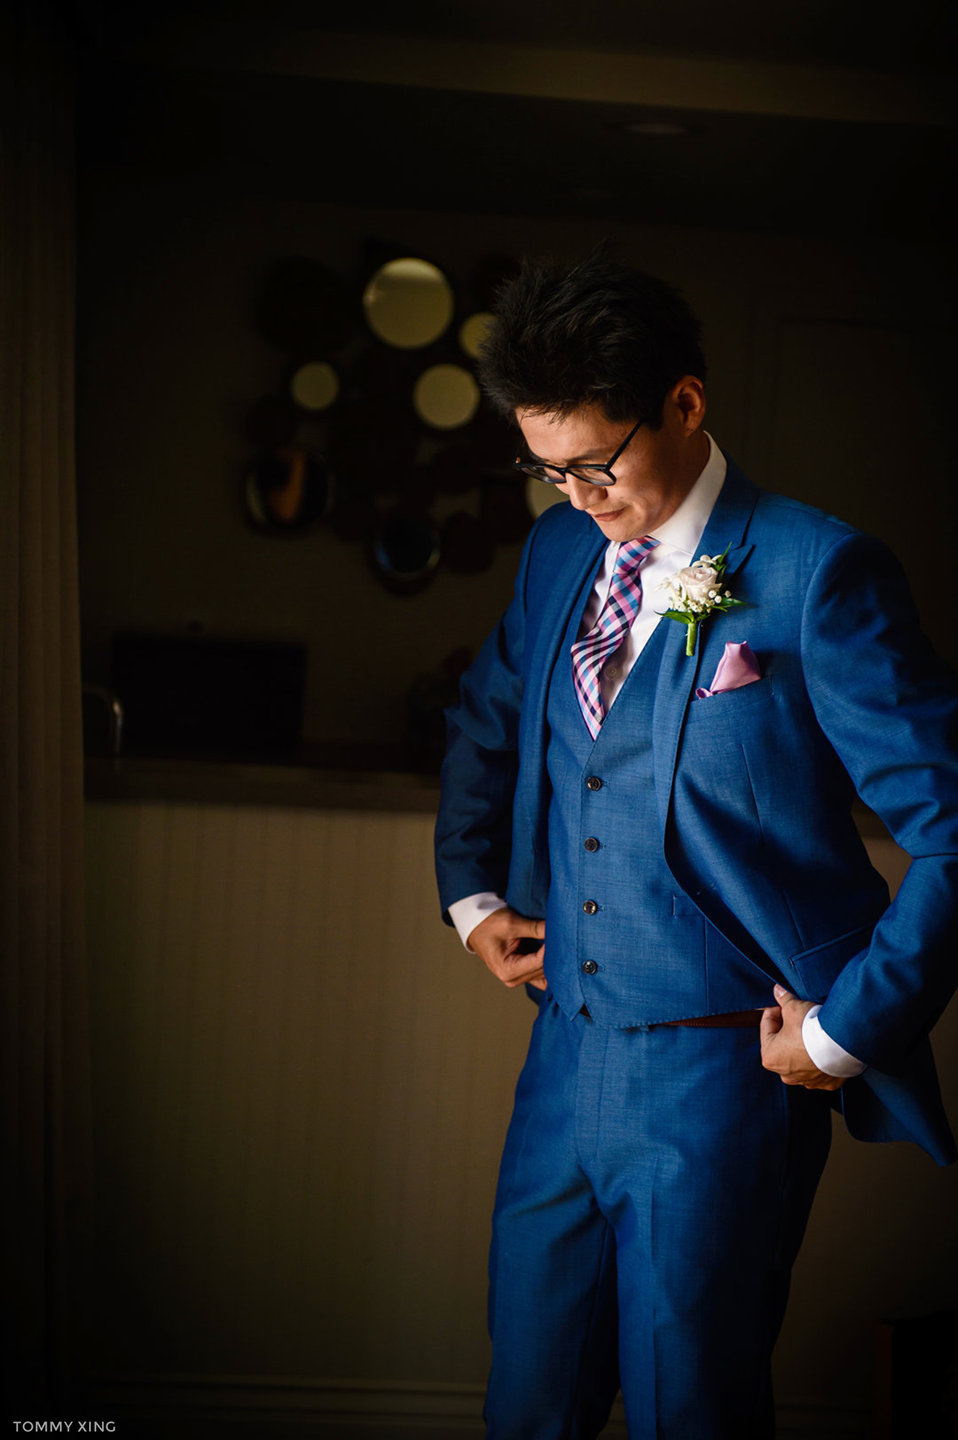 Paradise Point Resort Wedding Xiaolu & Bin San Diego 圣地亚哥婚礼摄影跟拍 Tommy Xing Photography 洛杉矶婚礼婚纱照摄影师 051.jpg